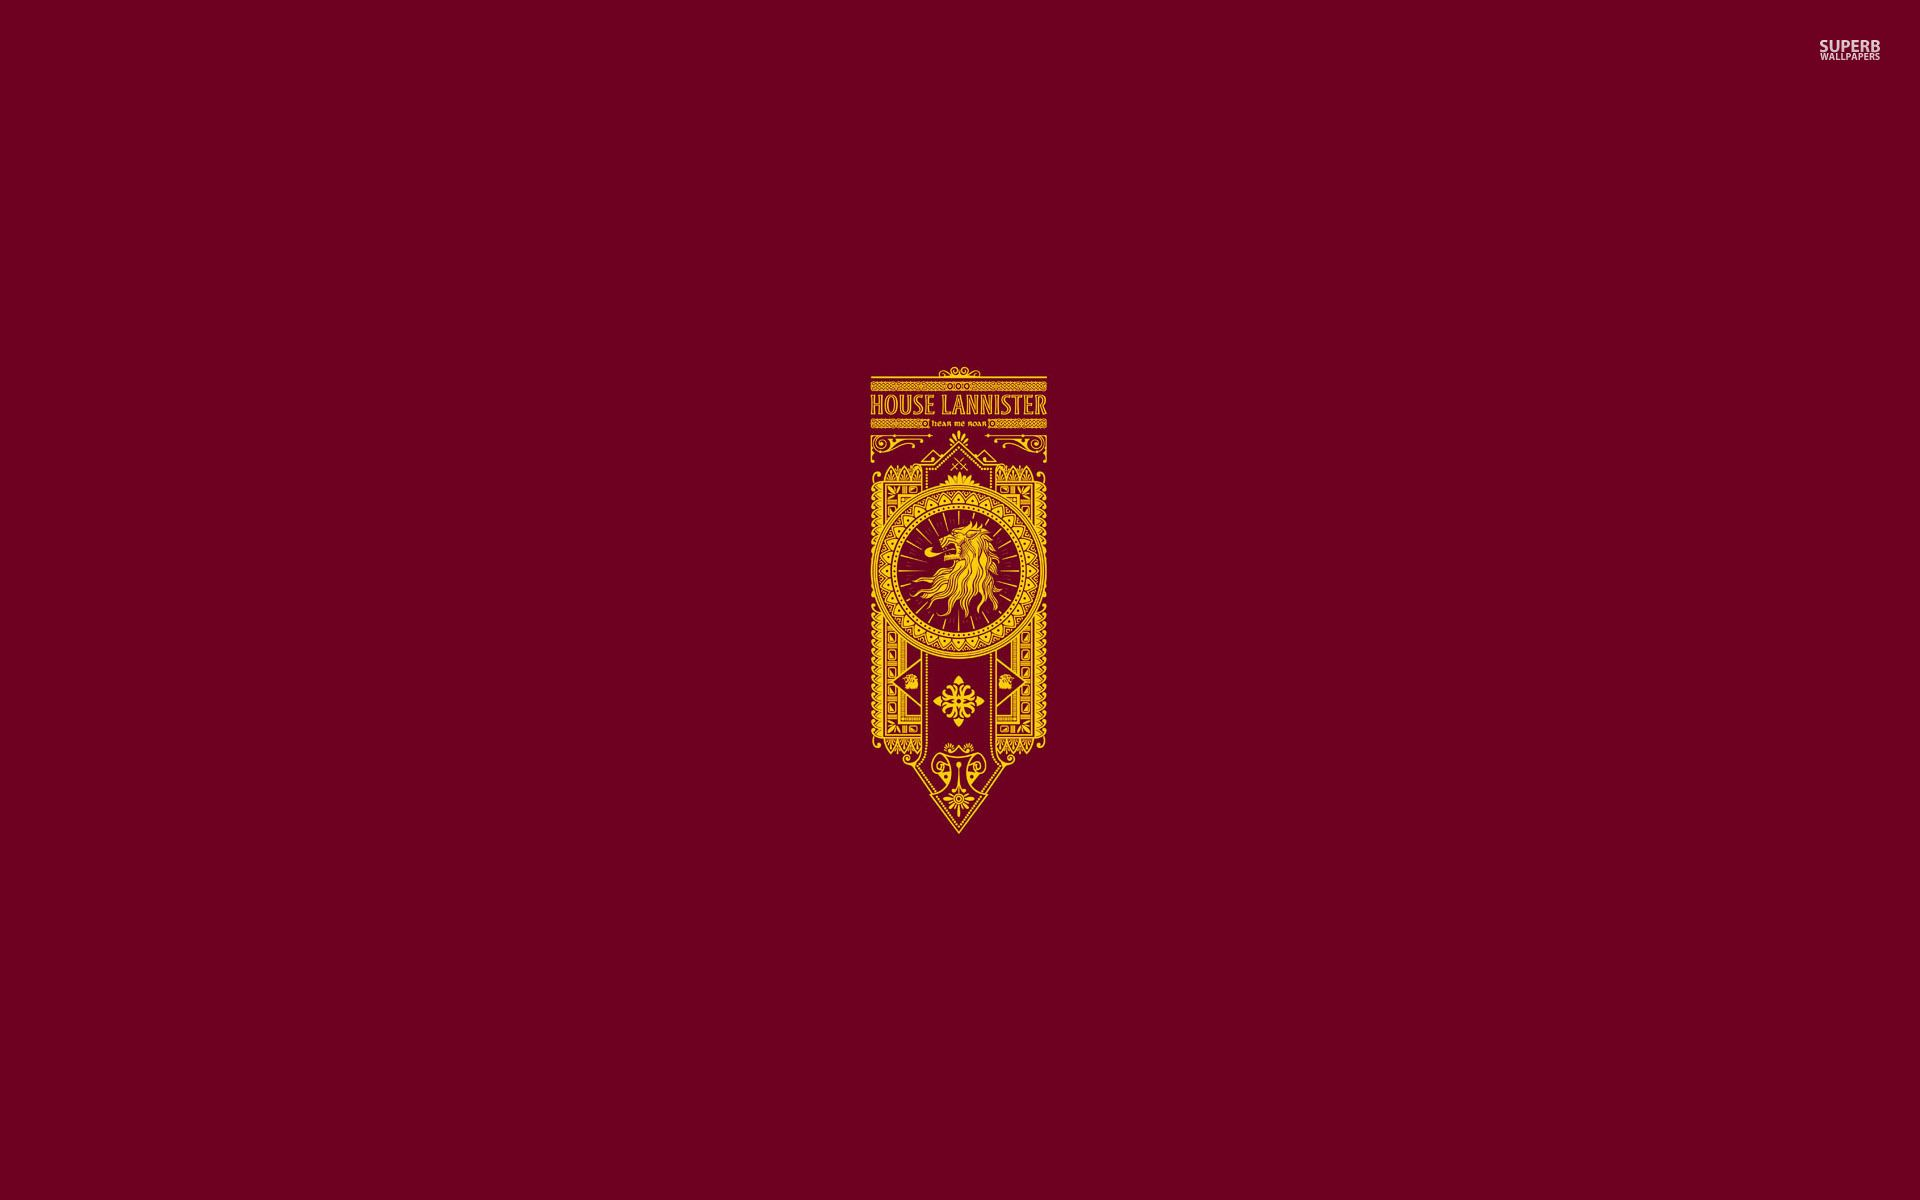 Download House Lannister Game Of Thrones Minimalistic 1920x1200